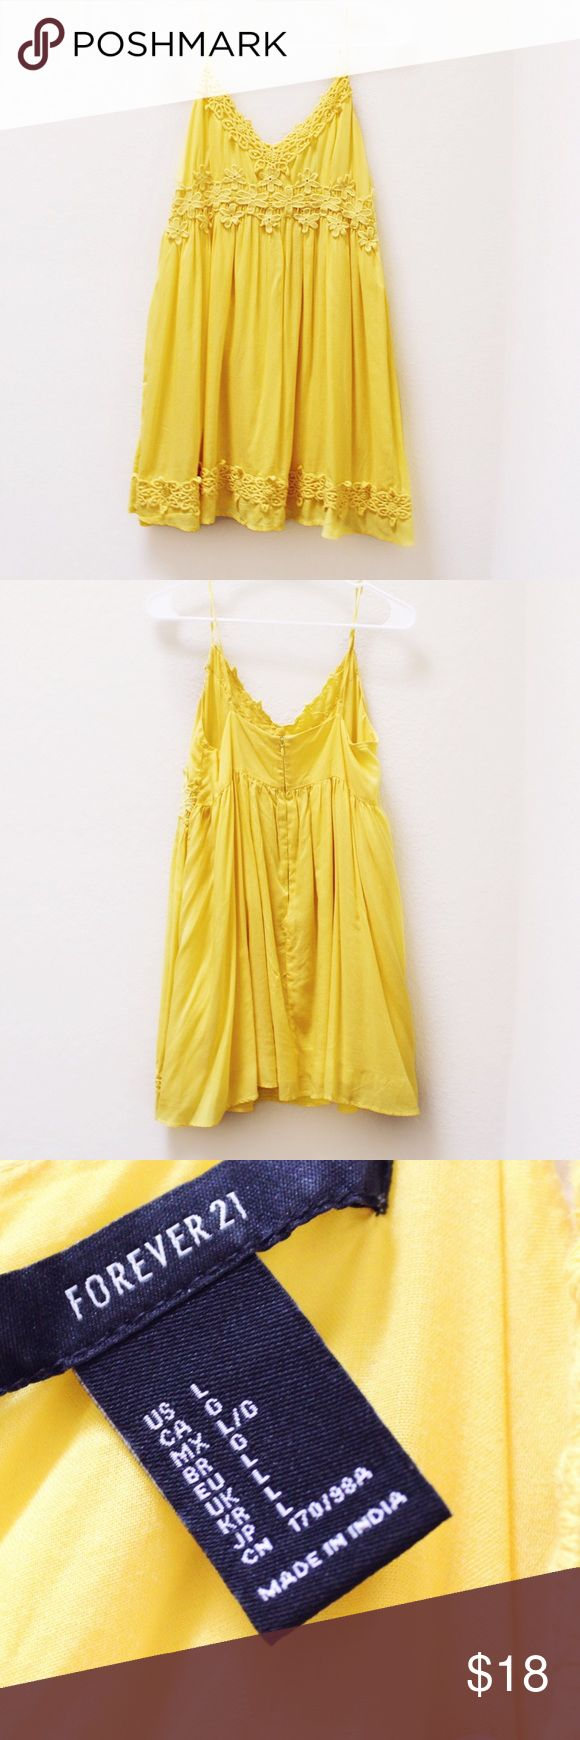 yellow mini dress Pretty little mini dress with lace details from forever 21. So retro looking! Looks like it is straight out of a glamorous Slim Aarons '60s poolside photograph ☀️ This is absolutely perfect for the spring and summer! Only worn twice and in great condition :) size large. Open to reasonable offers & I do bundles! Dresses Mini